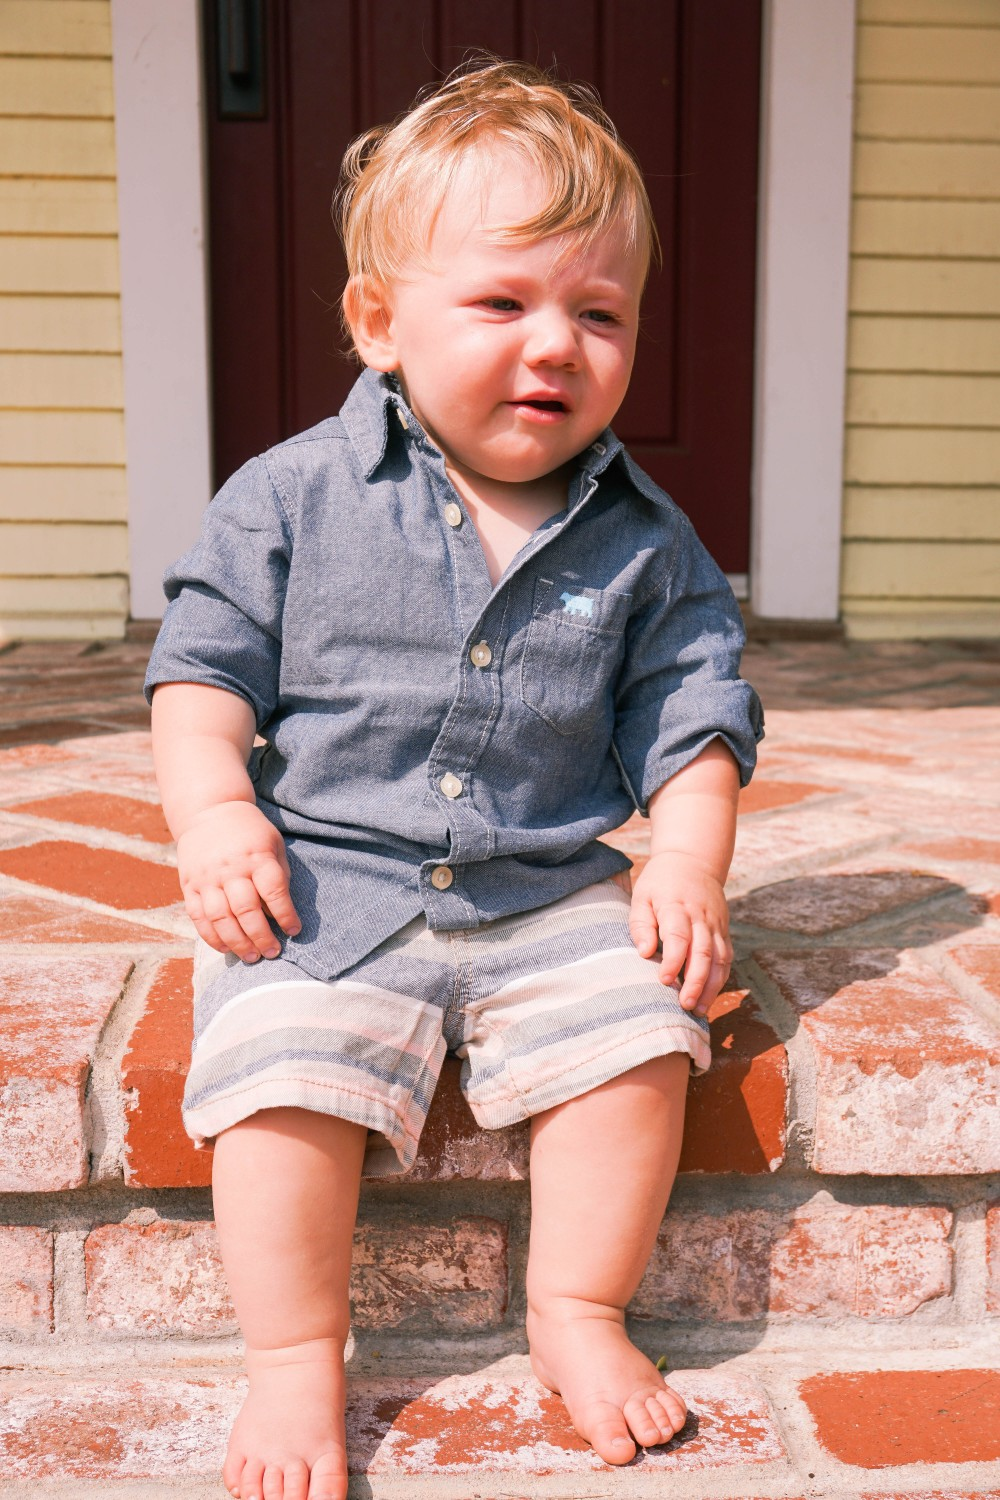 Carter's Baby-JCPenney-Baby Boy Clothes Under $30-Fall Fashion for Baby-Baby Clothing Sale-Have Need Want 16